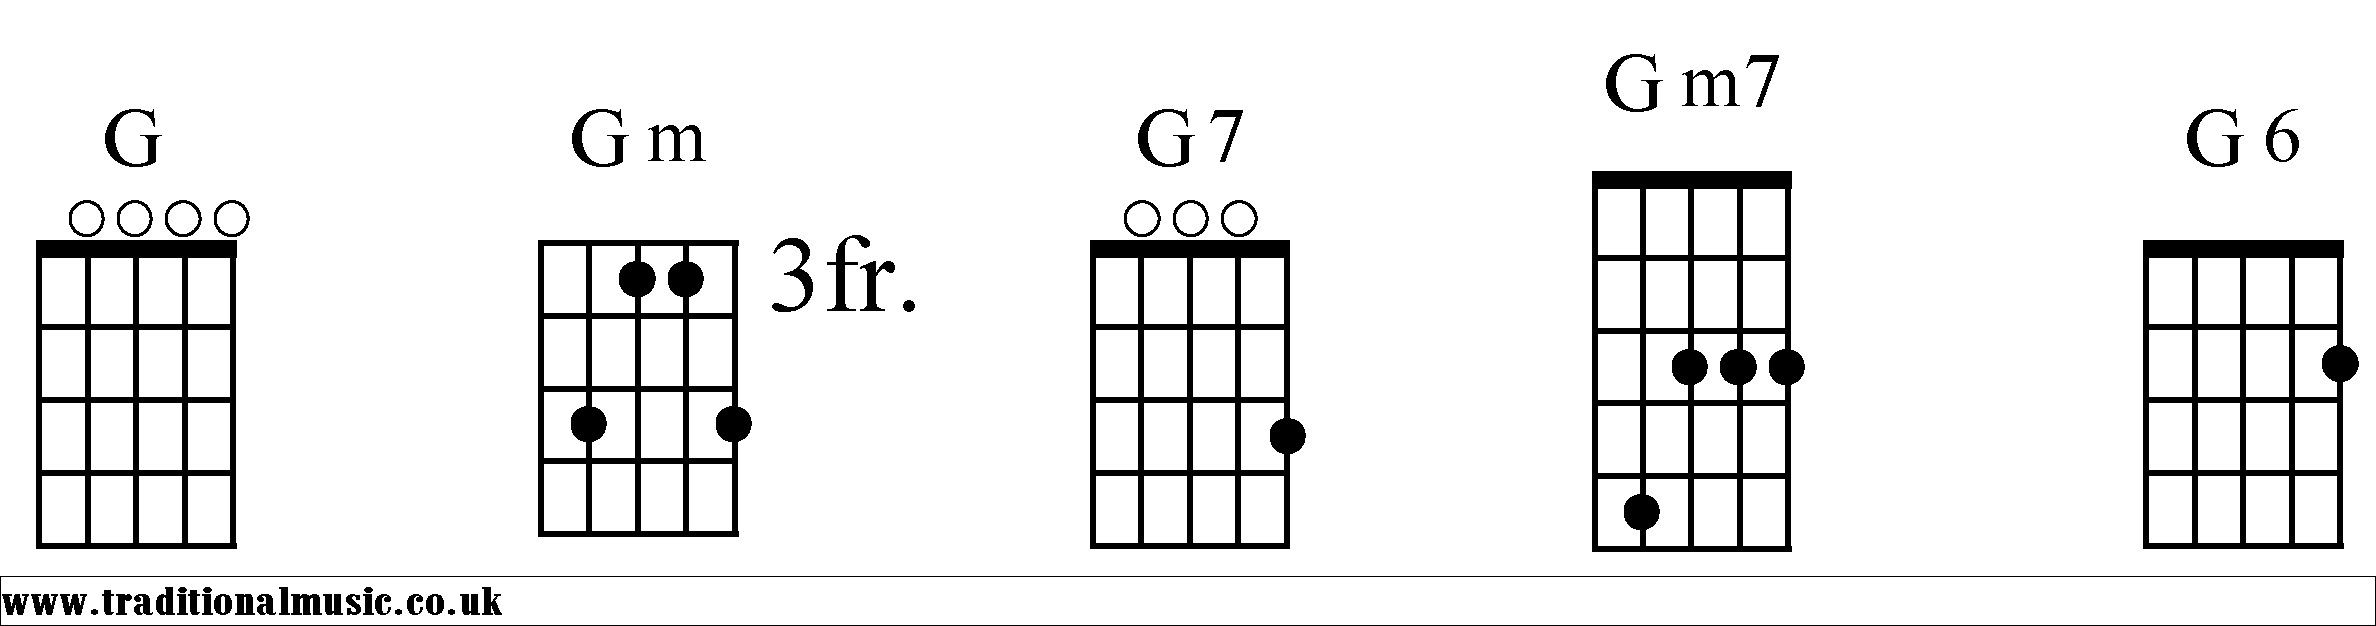 Chords starting G for 5 string Banjo in standard G tuning